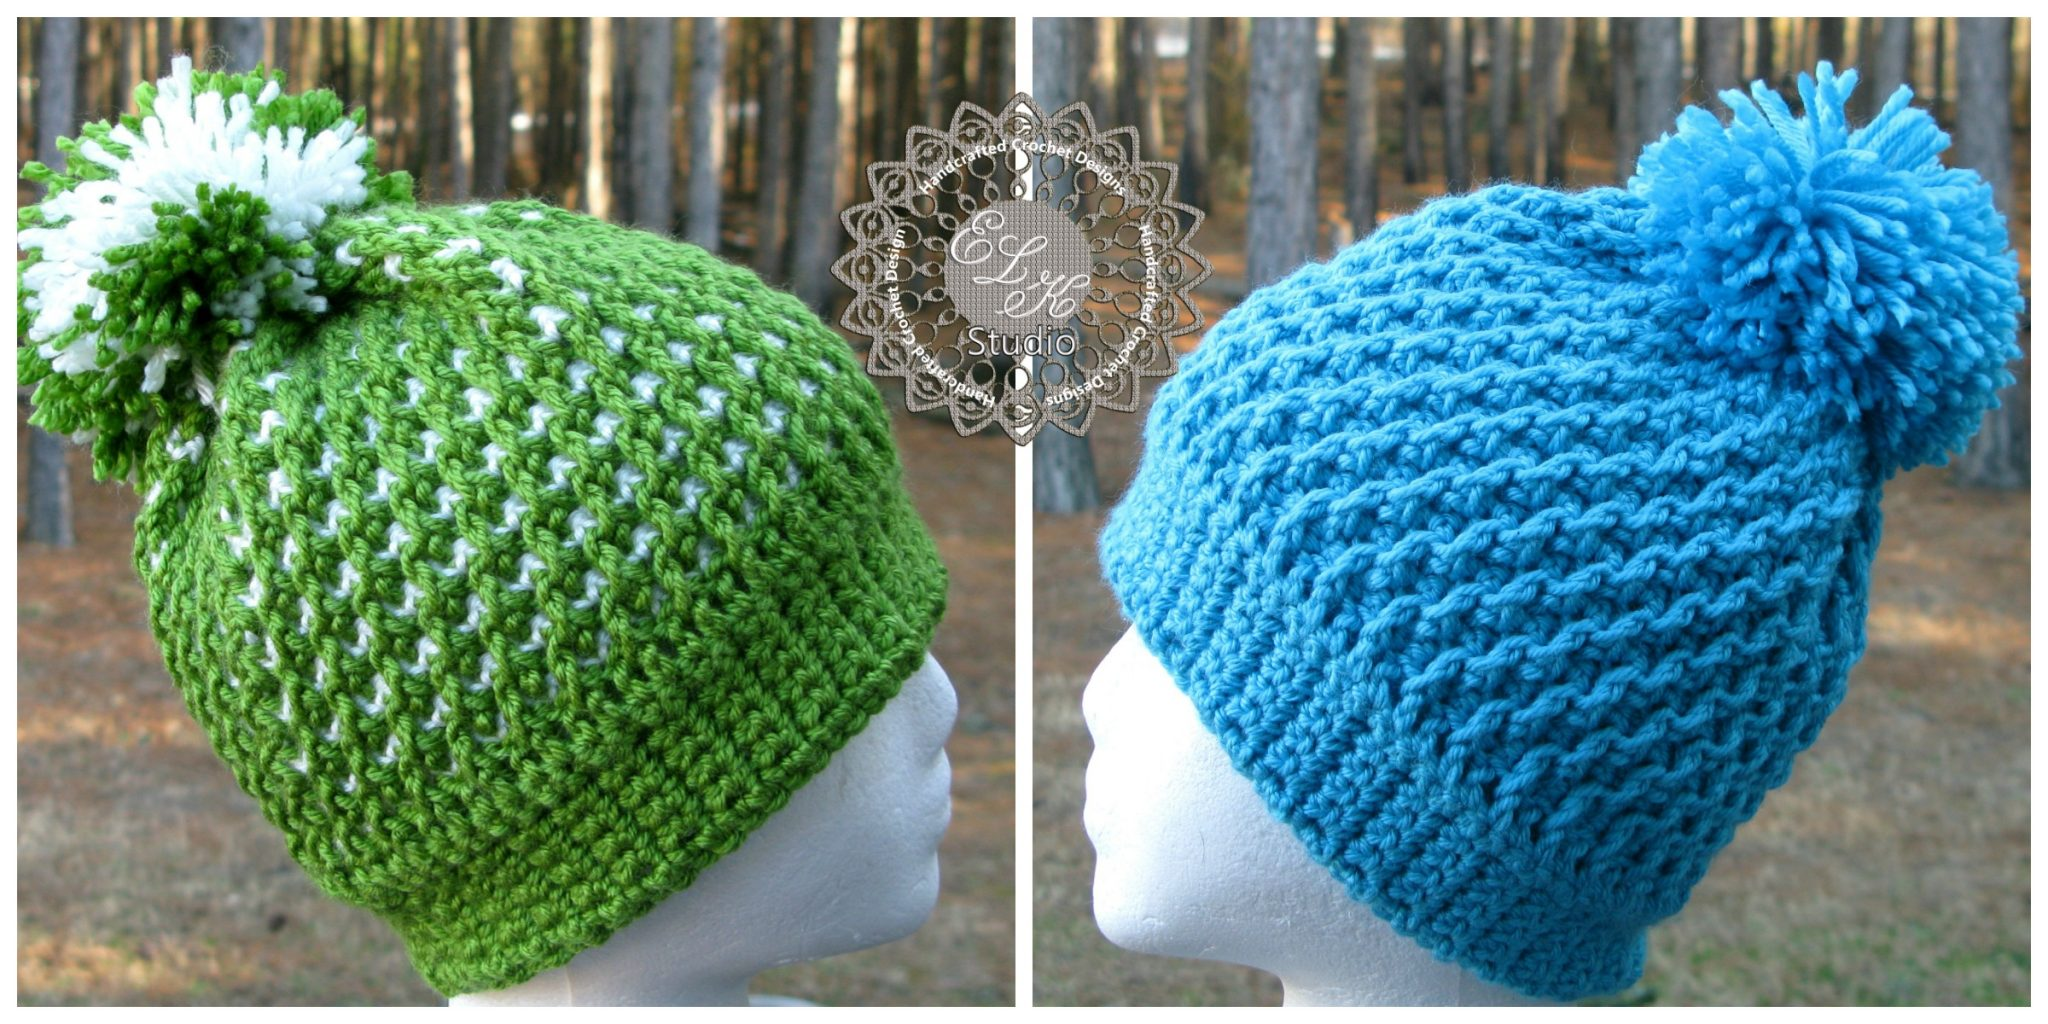 New Crochet : Its a New Crochet Hat Pattern! Free? Maybe..... - ELK Studio ...